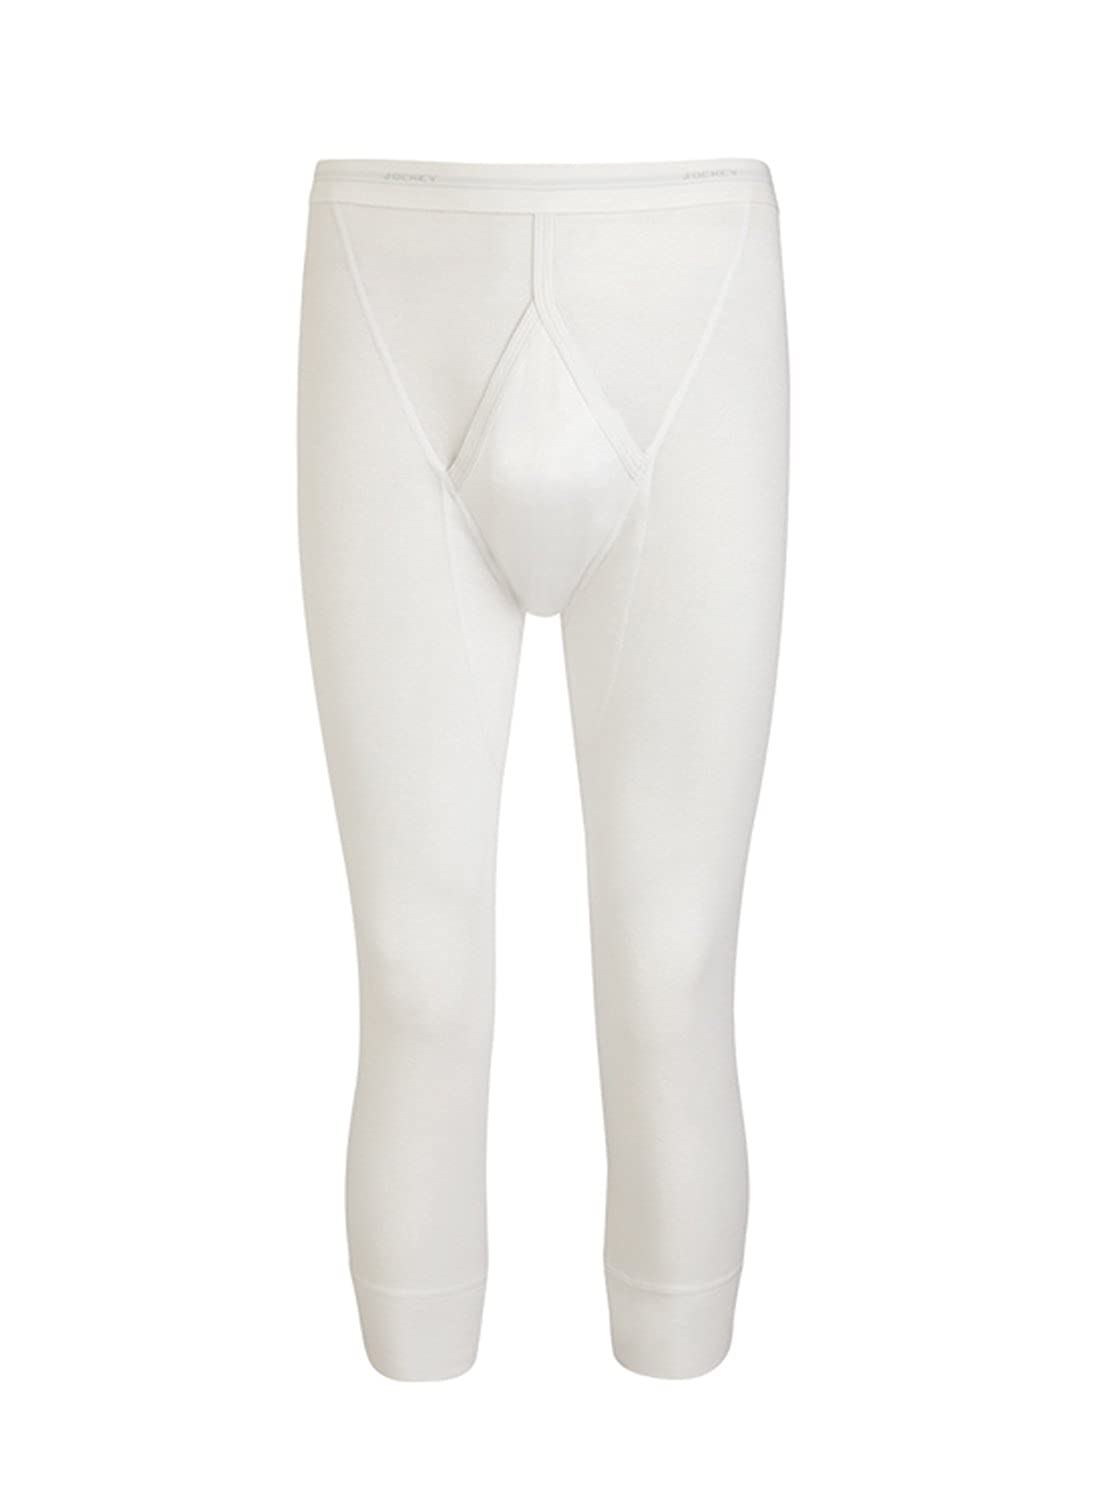 Jockey Luxury Cotton Short Long John Doppelpack - white S